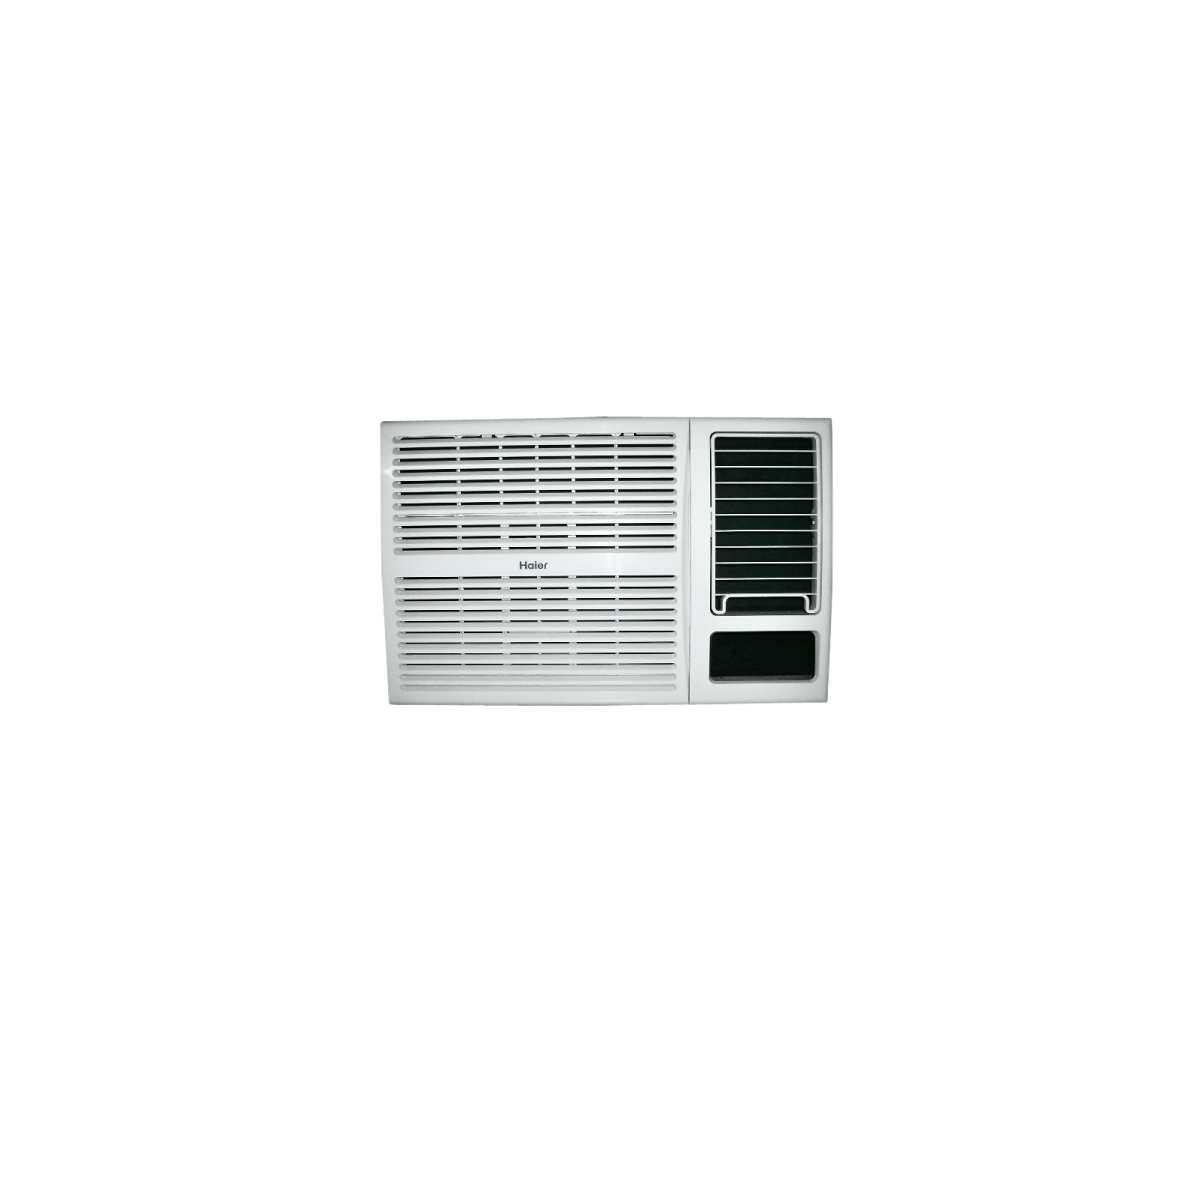 HAIER 1.5 TON 5 STAR WINDOW AIR CONDITIONER HW 18CH5CNA: Buy Online  #17201C